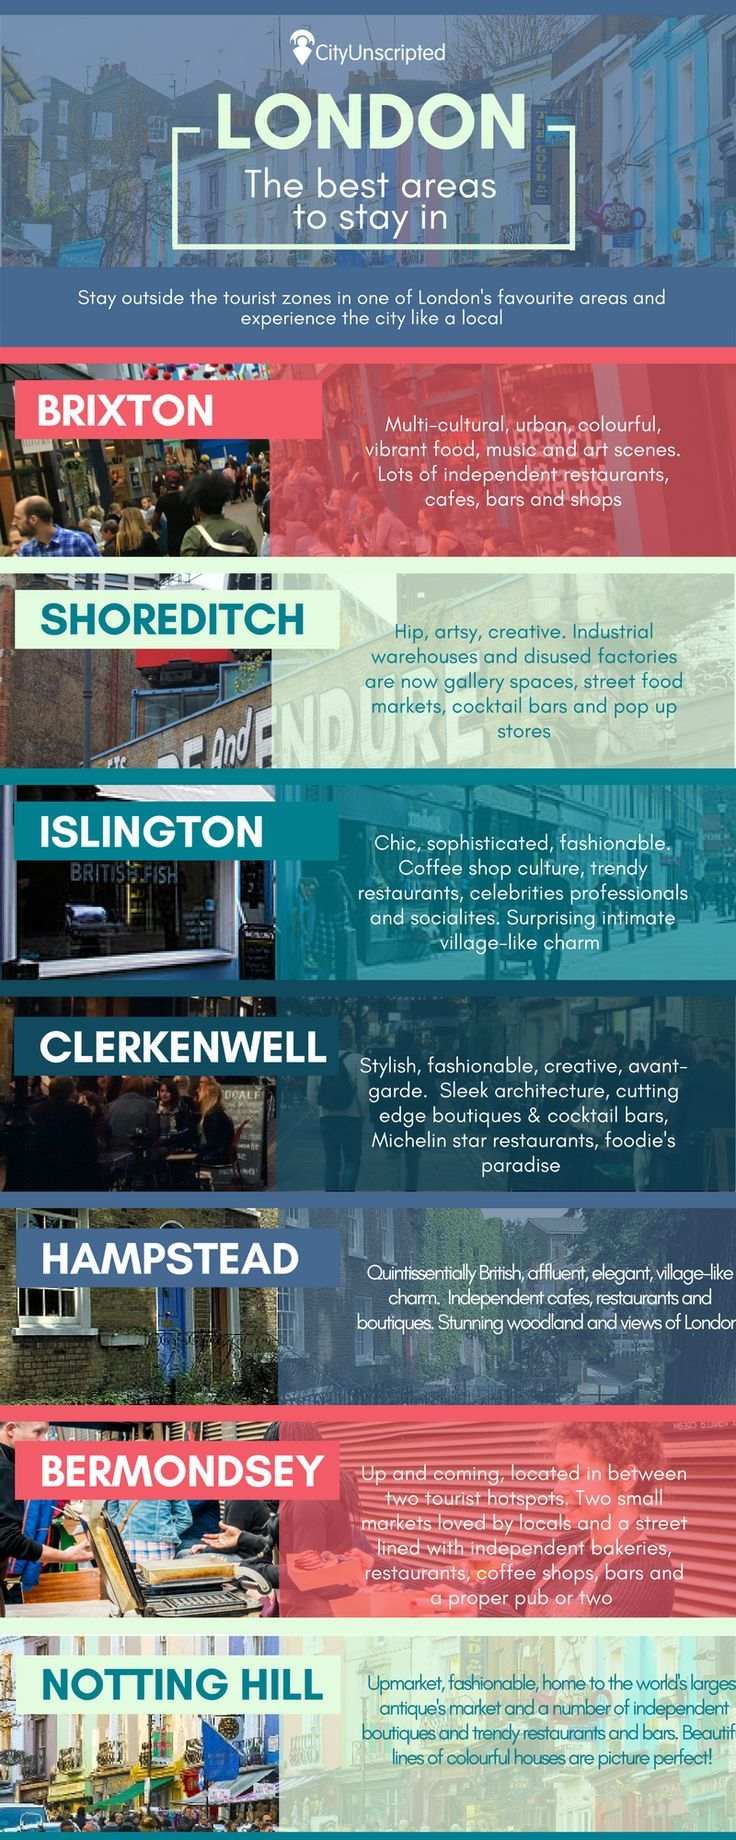 Best areas to stay in London